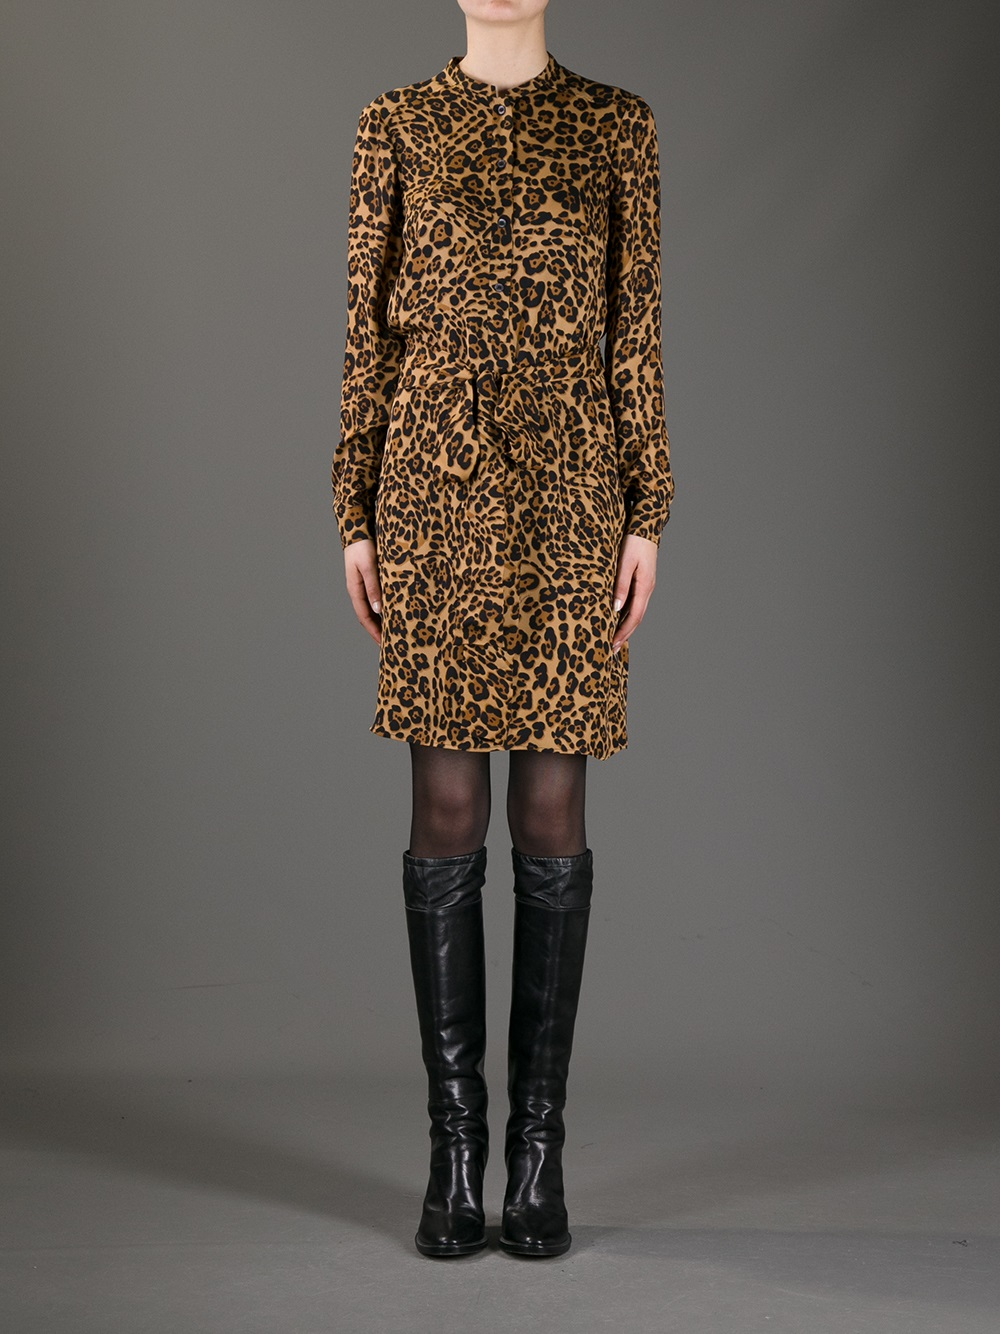 Lyst Gucci Leopard Print Blouse Dress In Brown